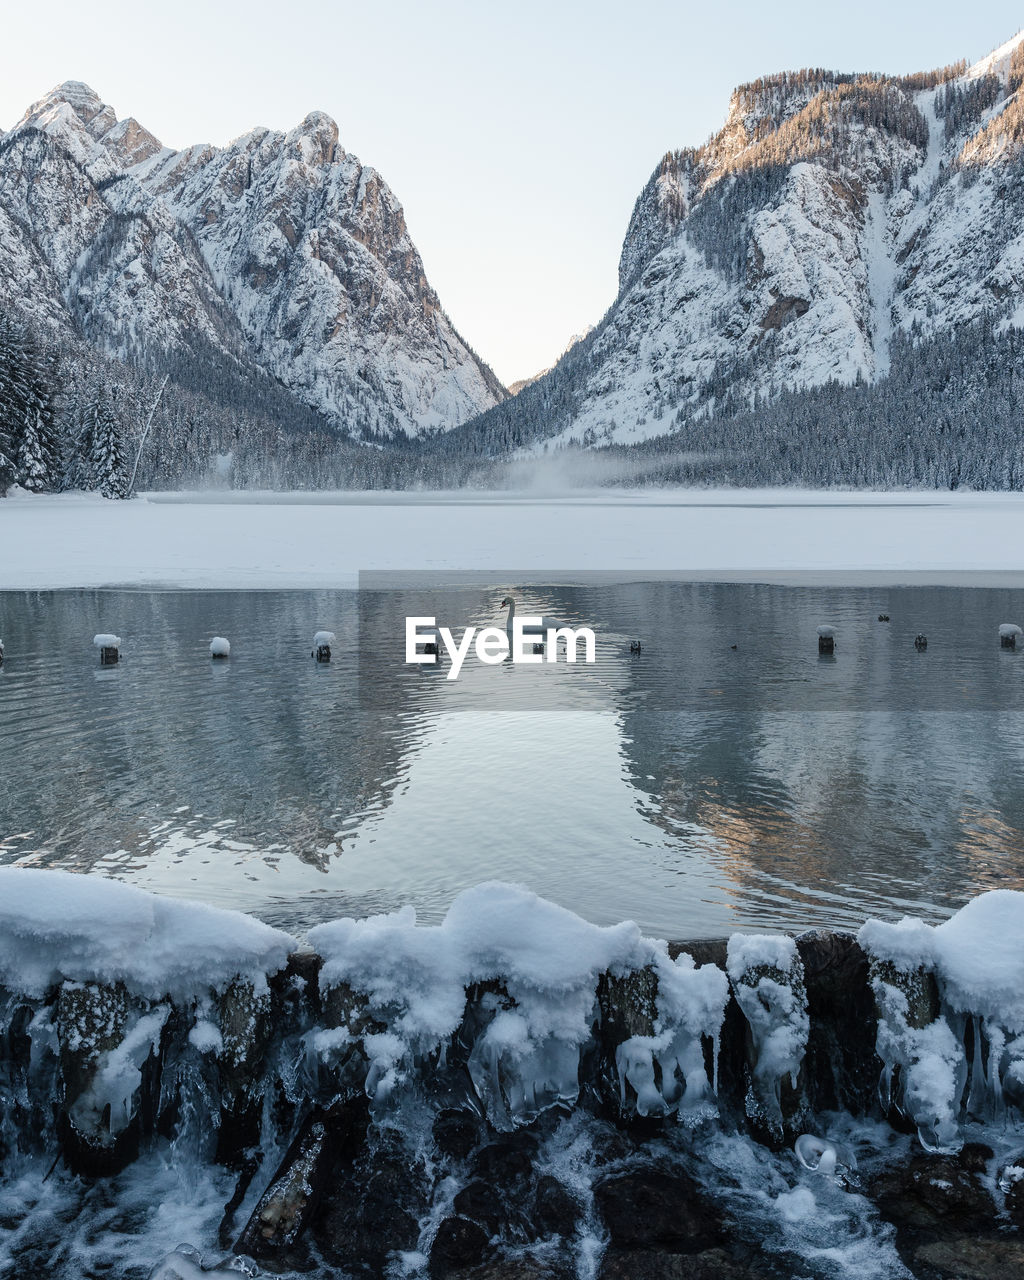 mountain, cold temperature, winter, snow, water, scenics - nature, beauty in nature, lake, frozen, mountain range, tranquil scene, nature, tranquility, non-urban scene, no people, ice, idyllic, day, snowcapped mountain, outdoors, flowing water, mountain peak